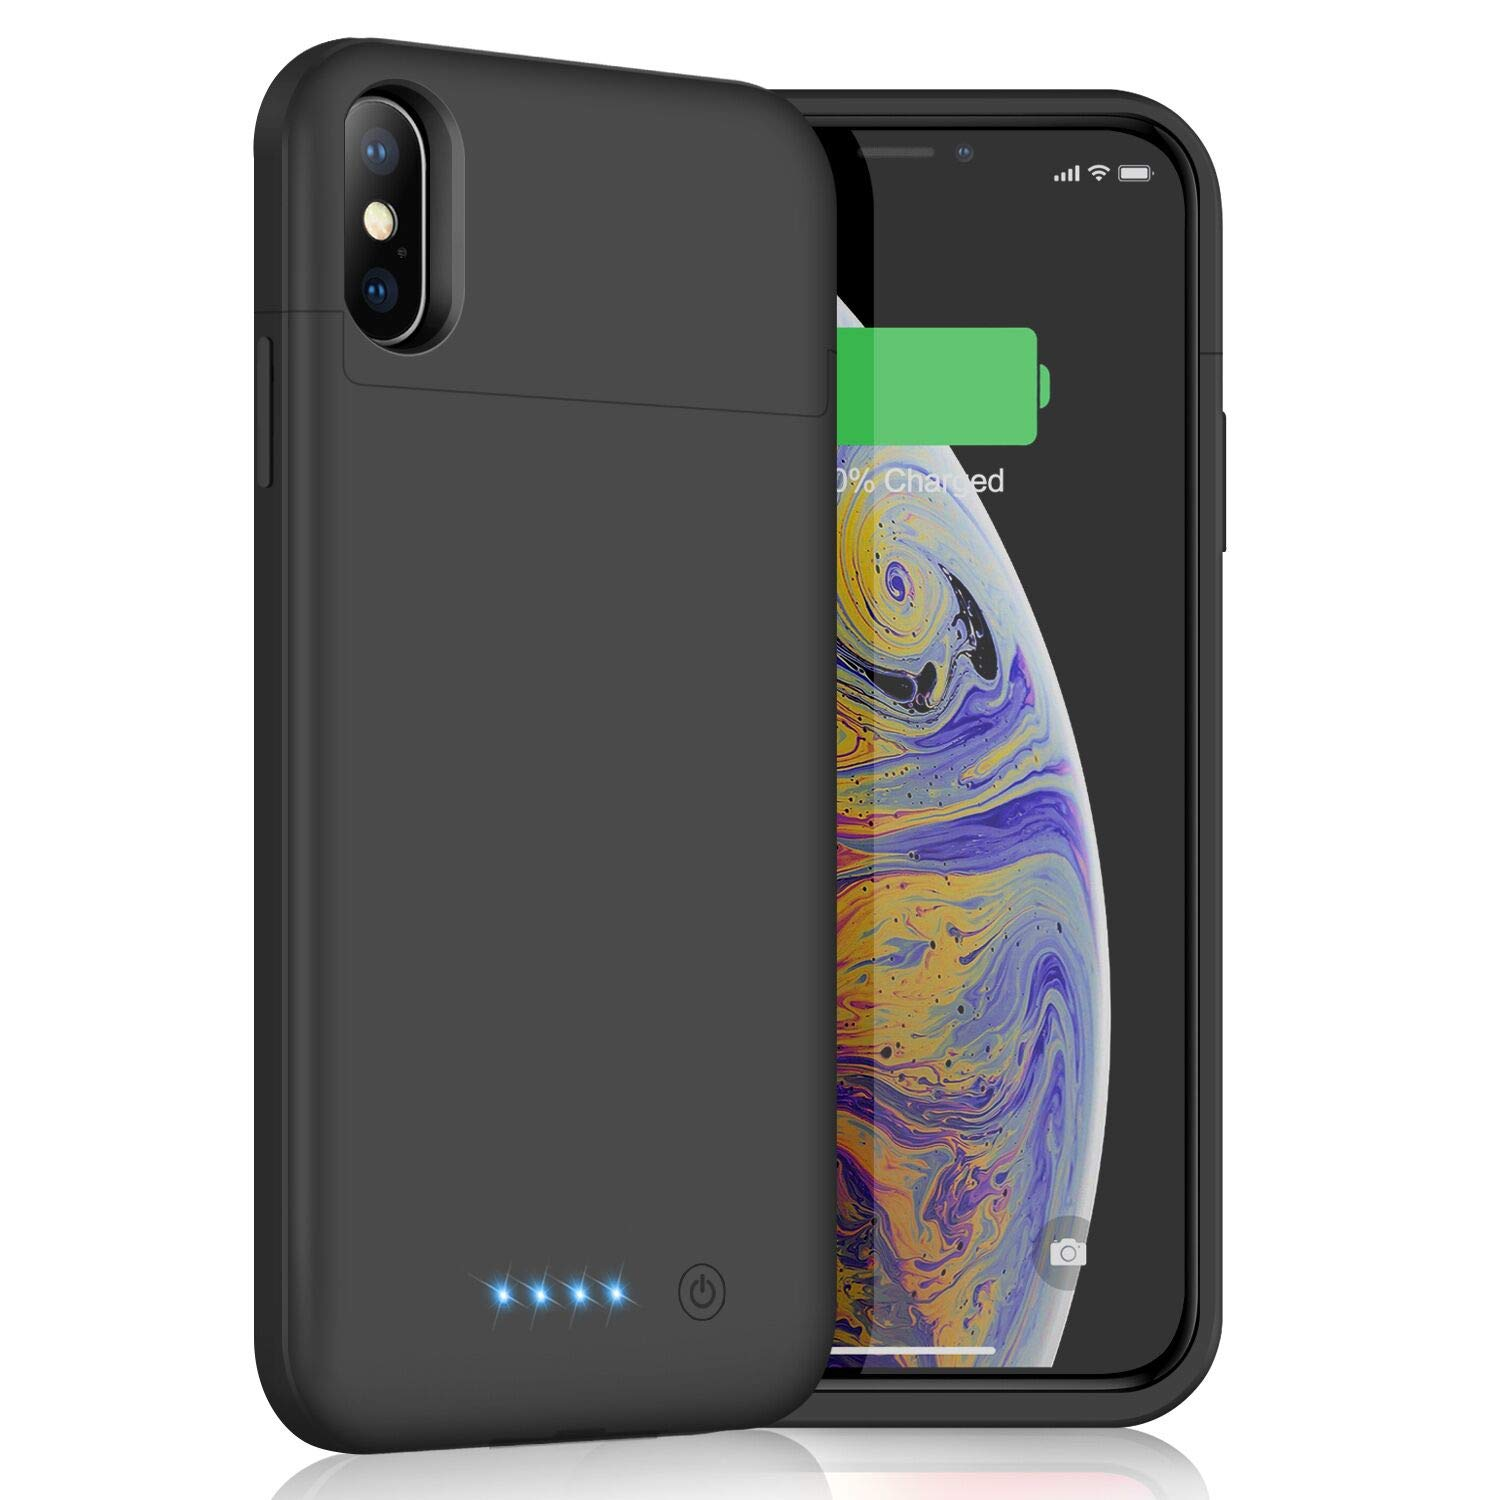 Battery Case for iPhone Xs Max, 6200mAh Slim Portable Charger Case Rechargeable Extended Battery Pack for Apple iPhone Xs Max (6.5 Inch) Protective Charging Case Backup Cover Power Bank (Black)